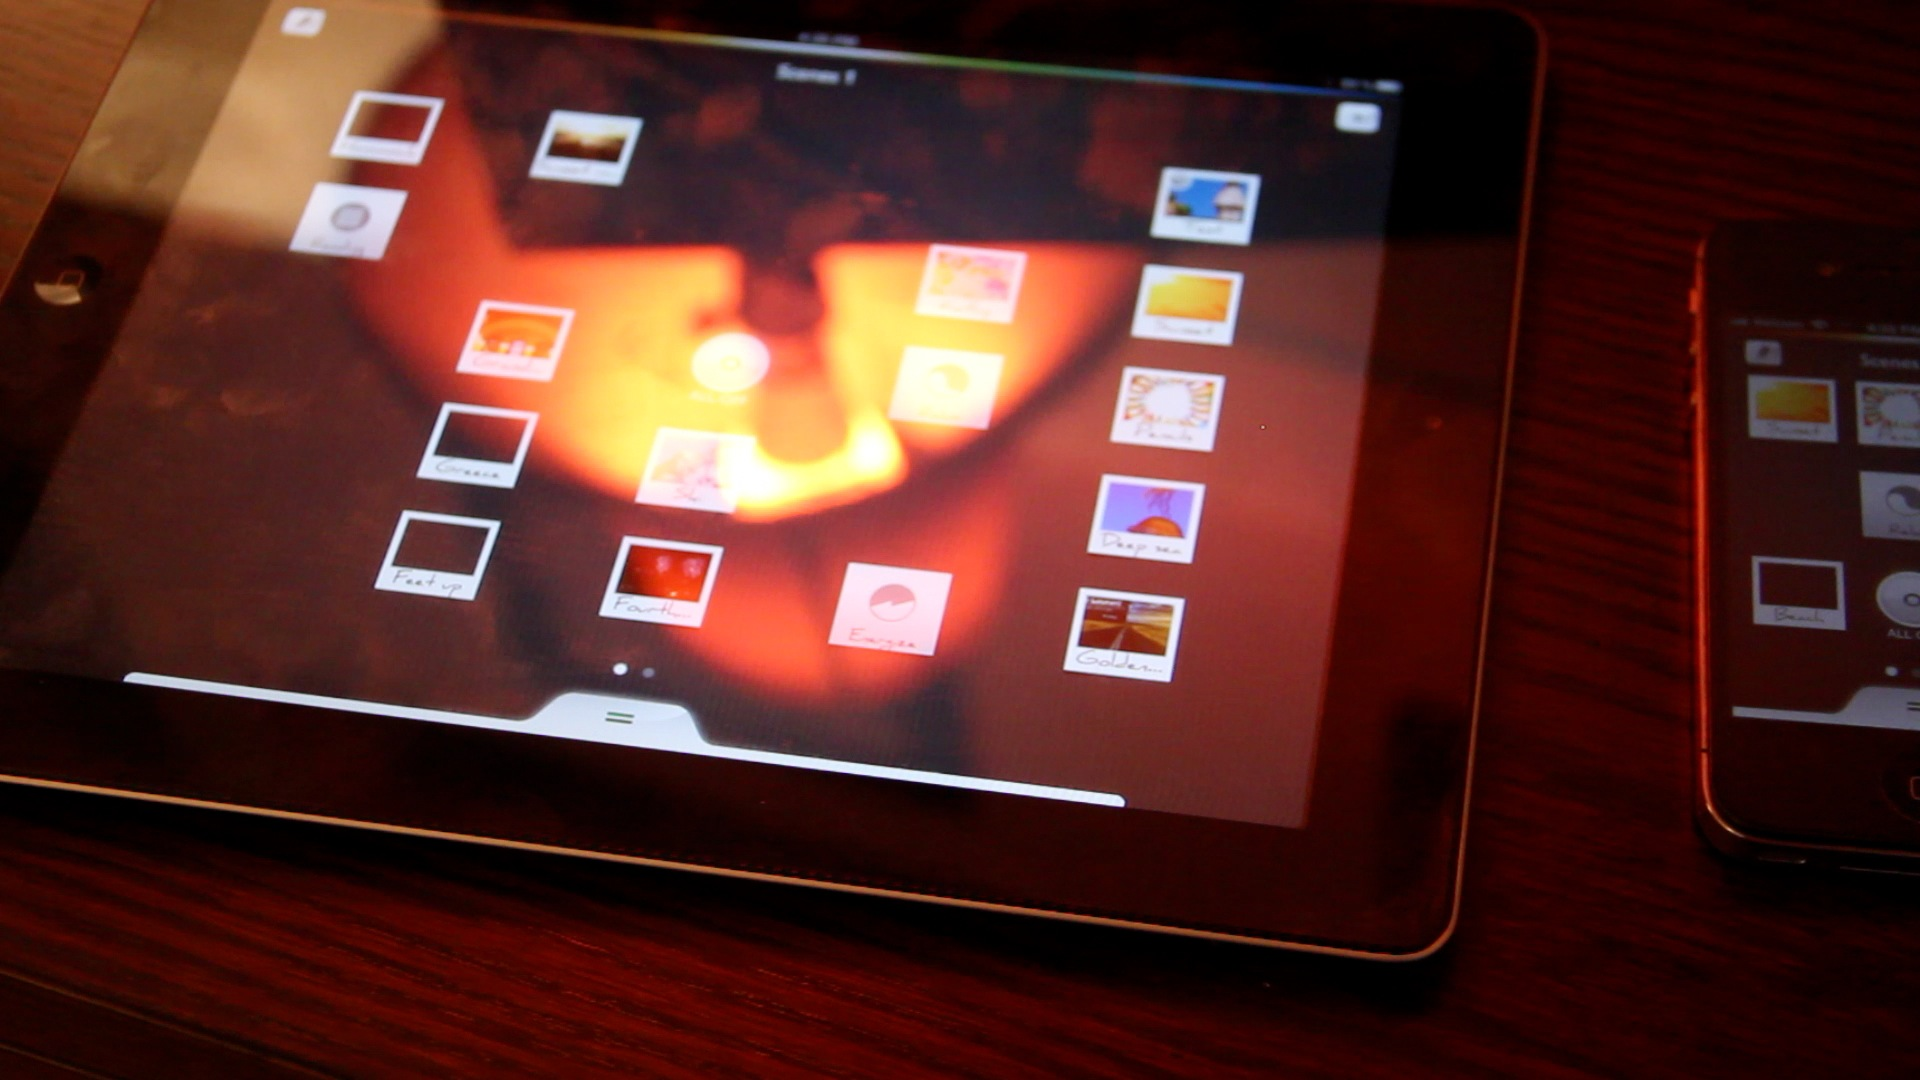 control lighting with ipad. In Control Lighting With Ipad A